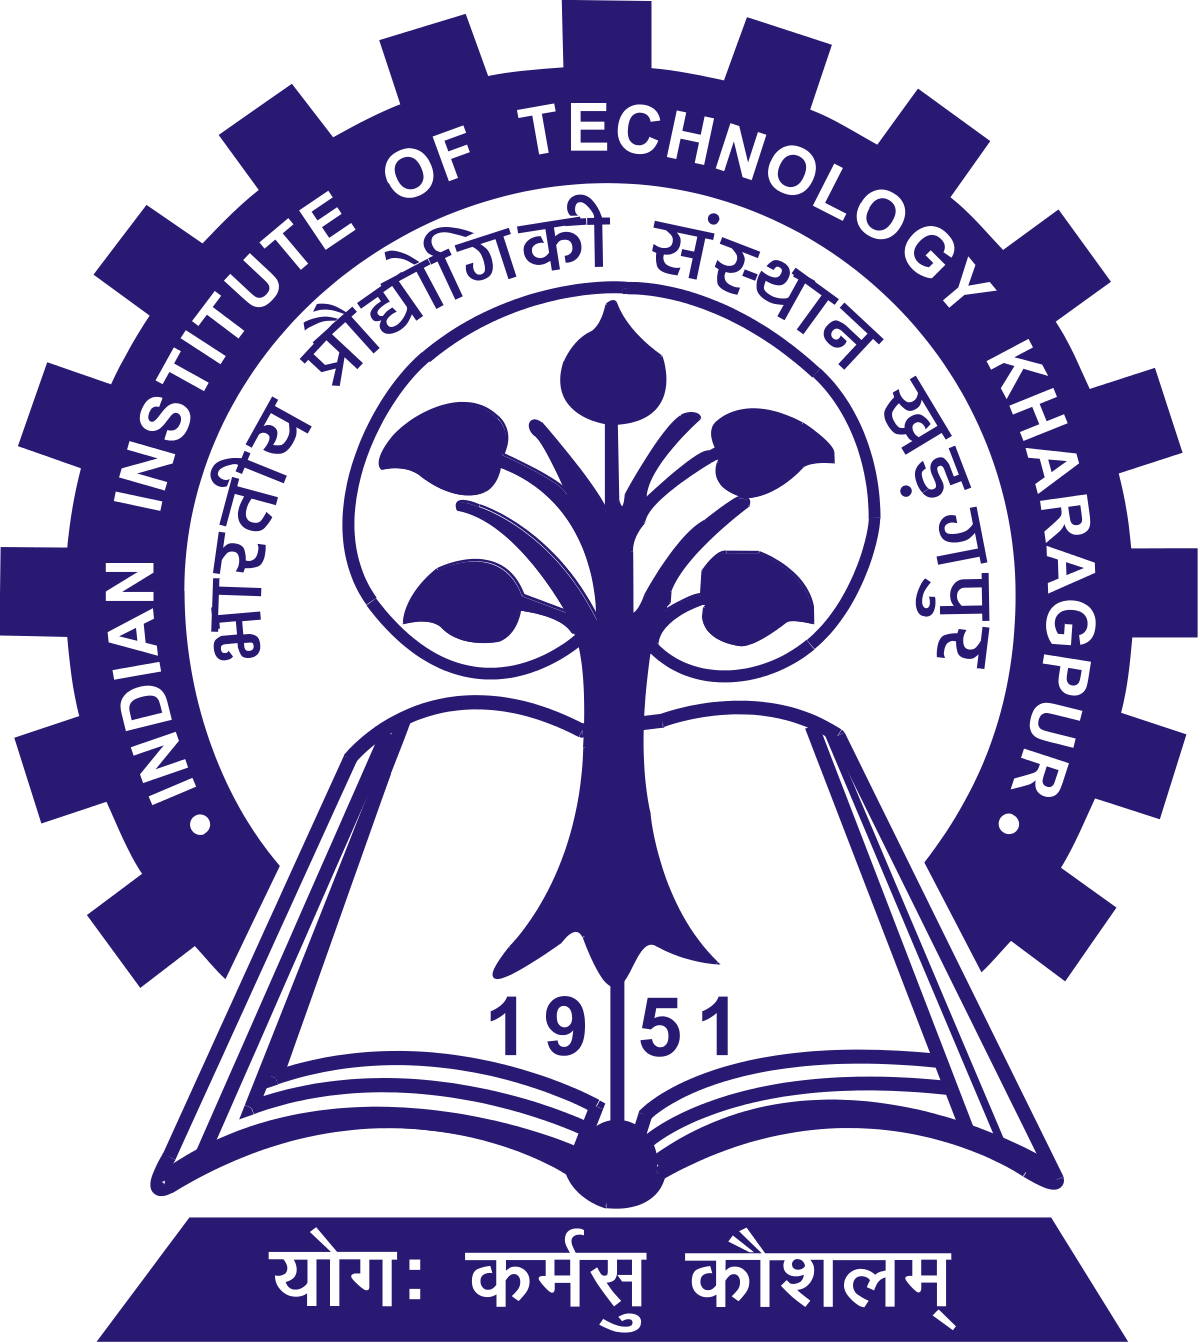 Programme on HPC Applications in CAE for Multi-Disciplinary Design Optimization at IIT Kharagpur [June 8-12]: Register by May 31